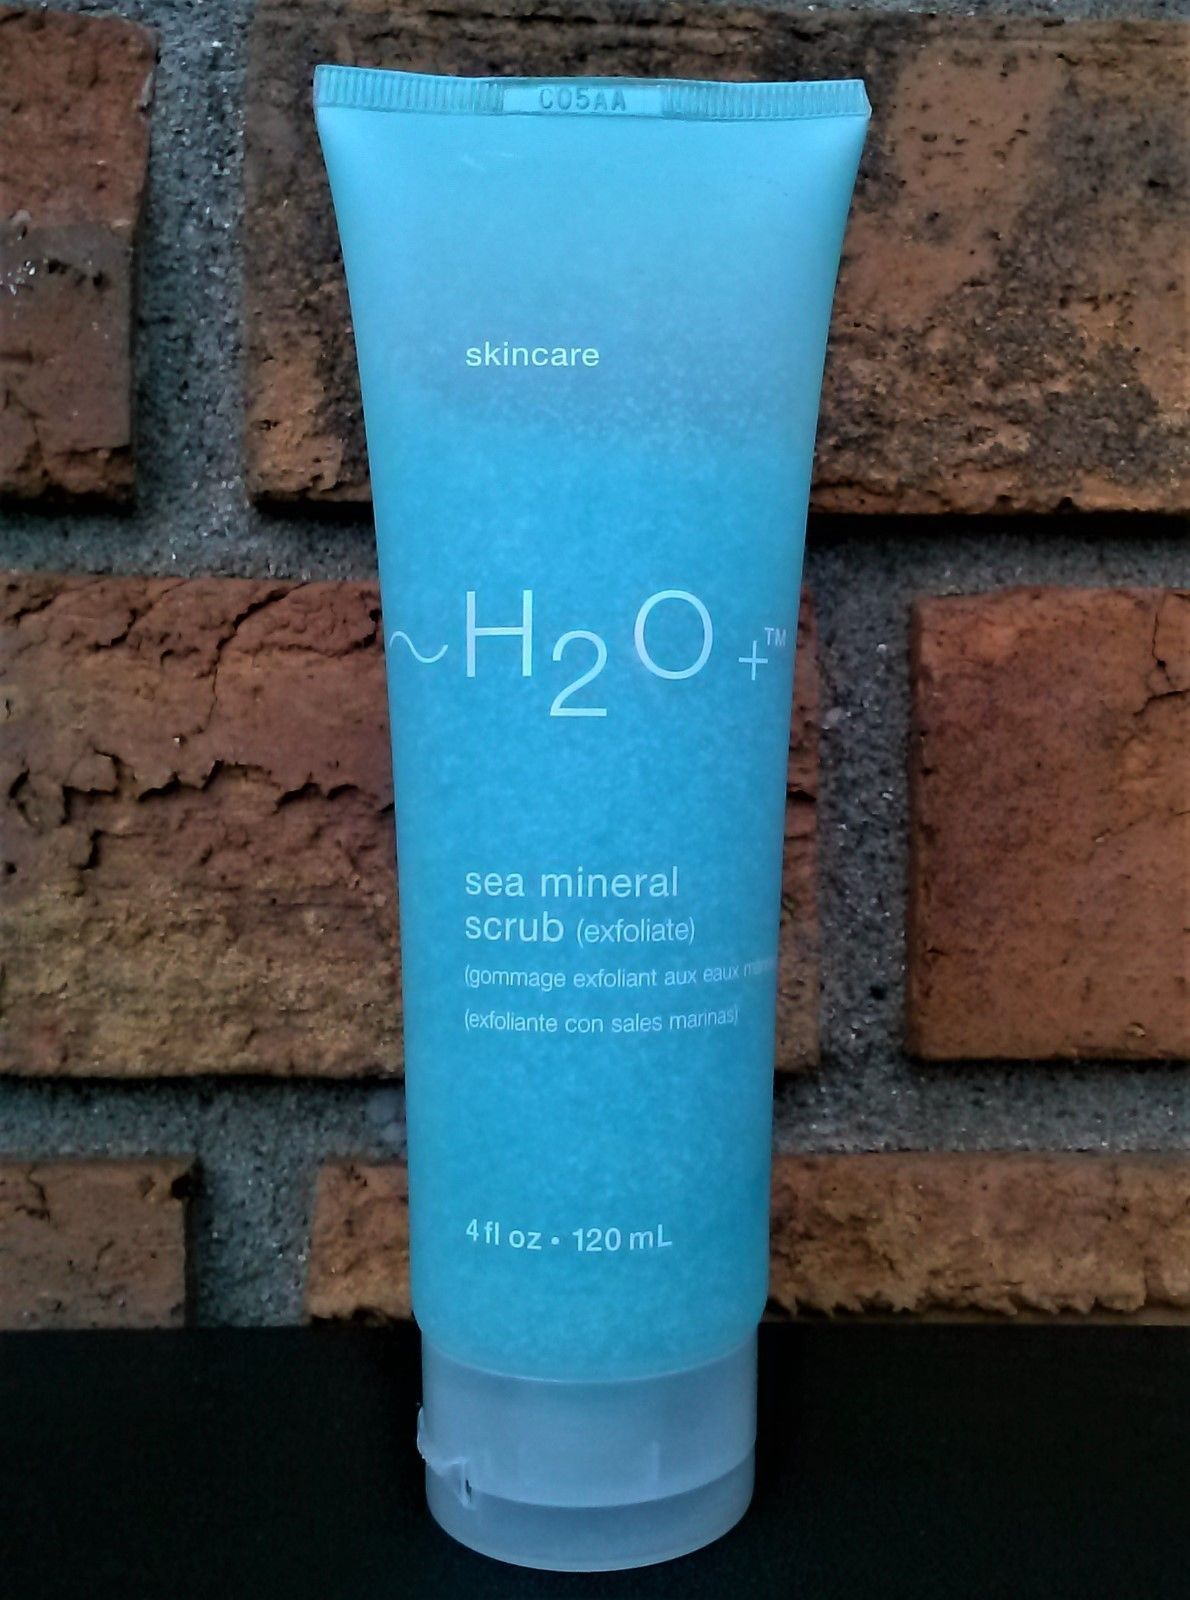 H2O Bath Moisturizing Body H20 Spa wash face and 50 similar items